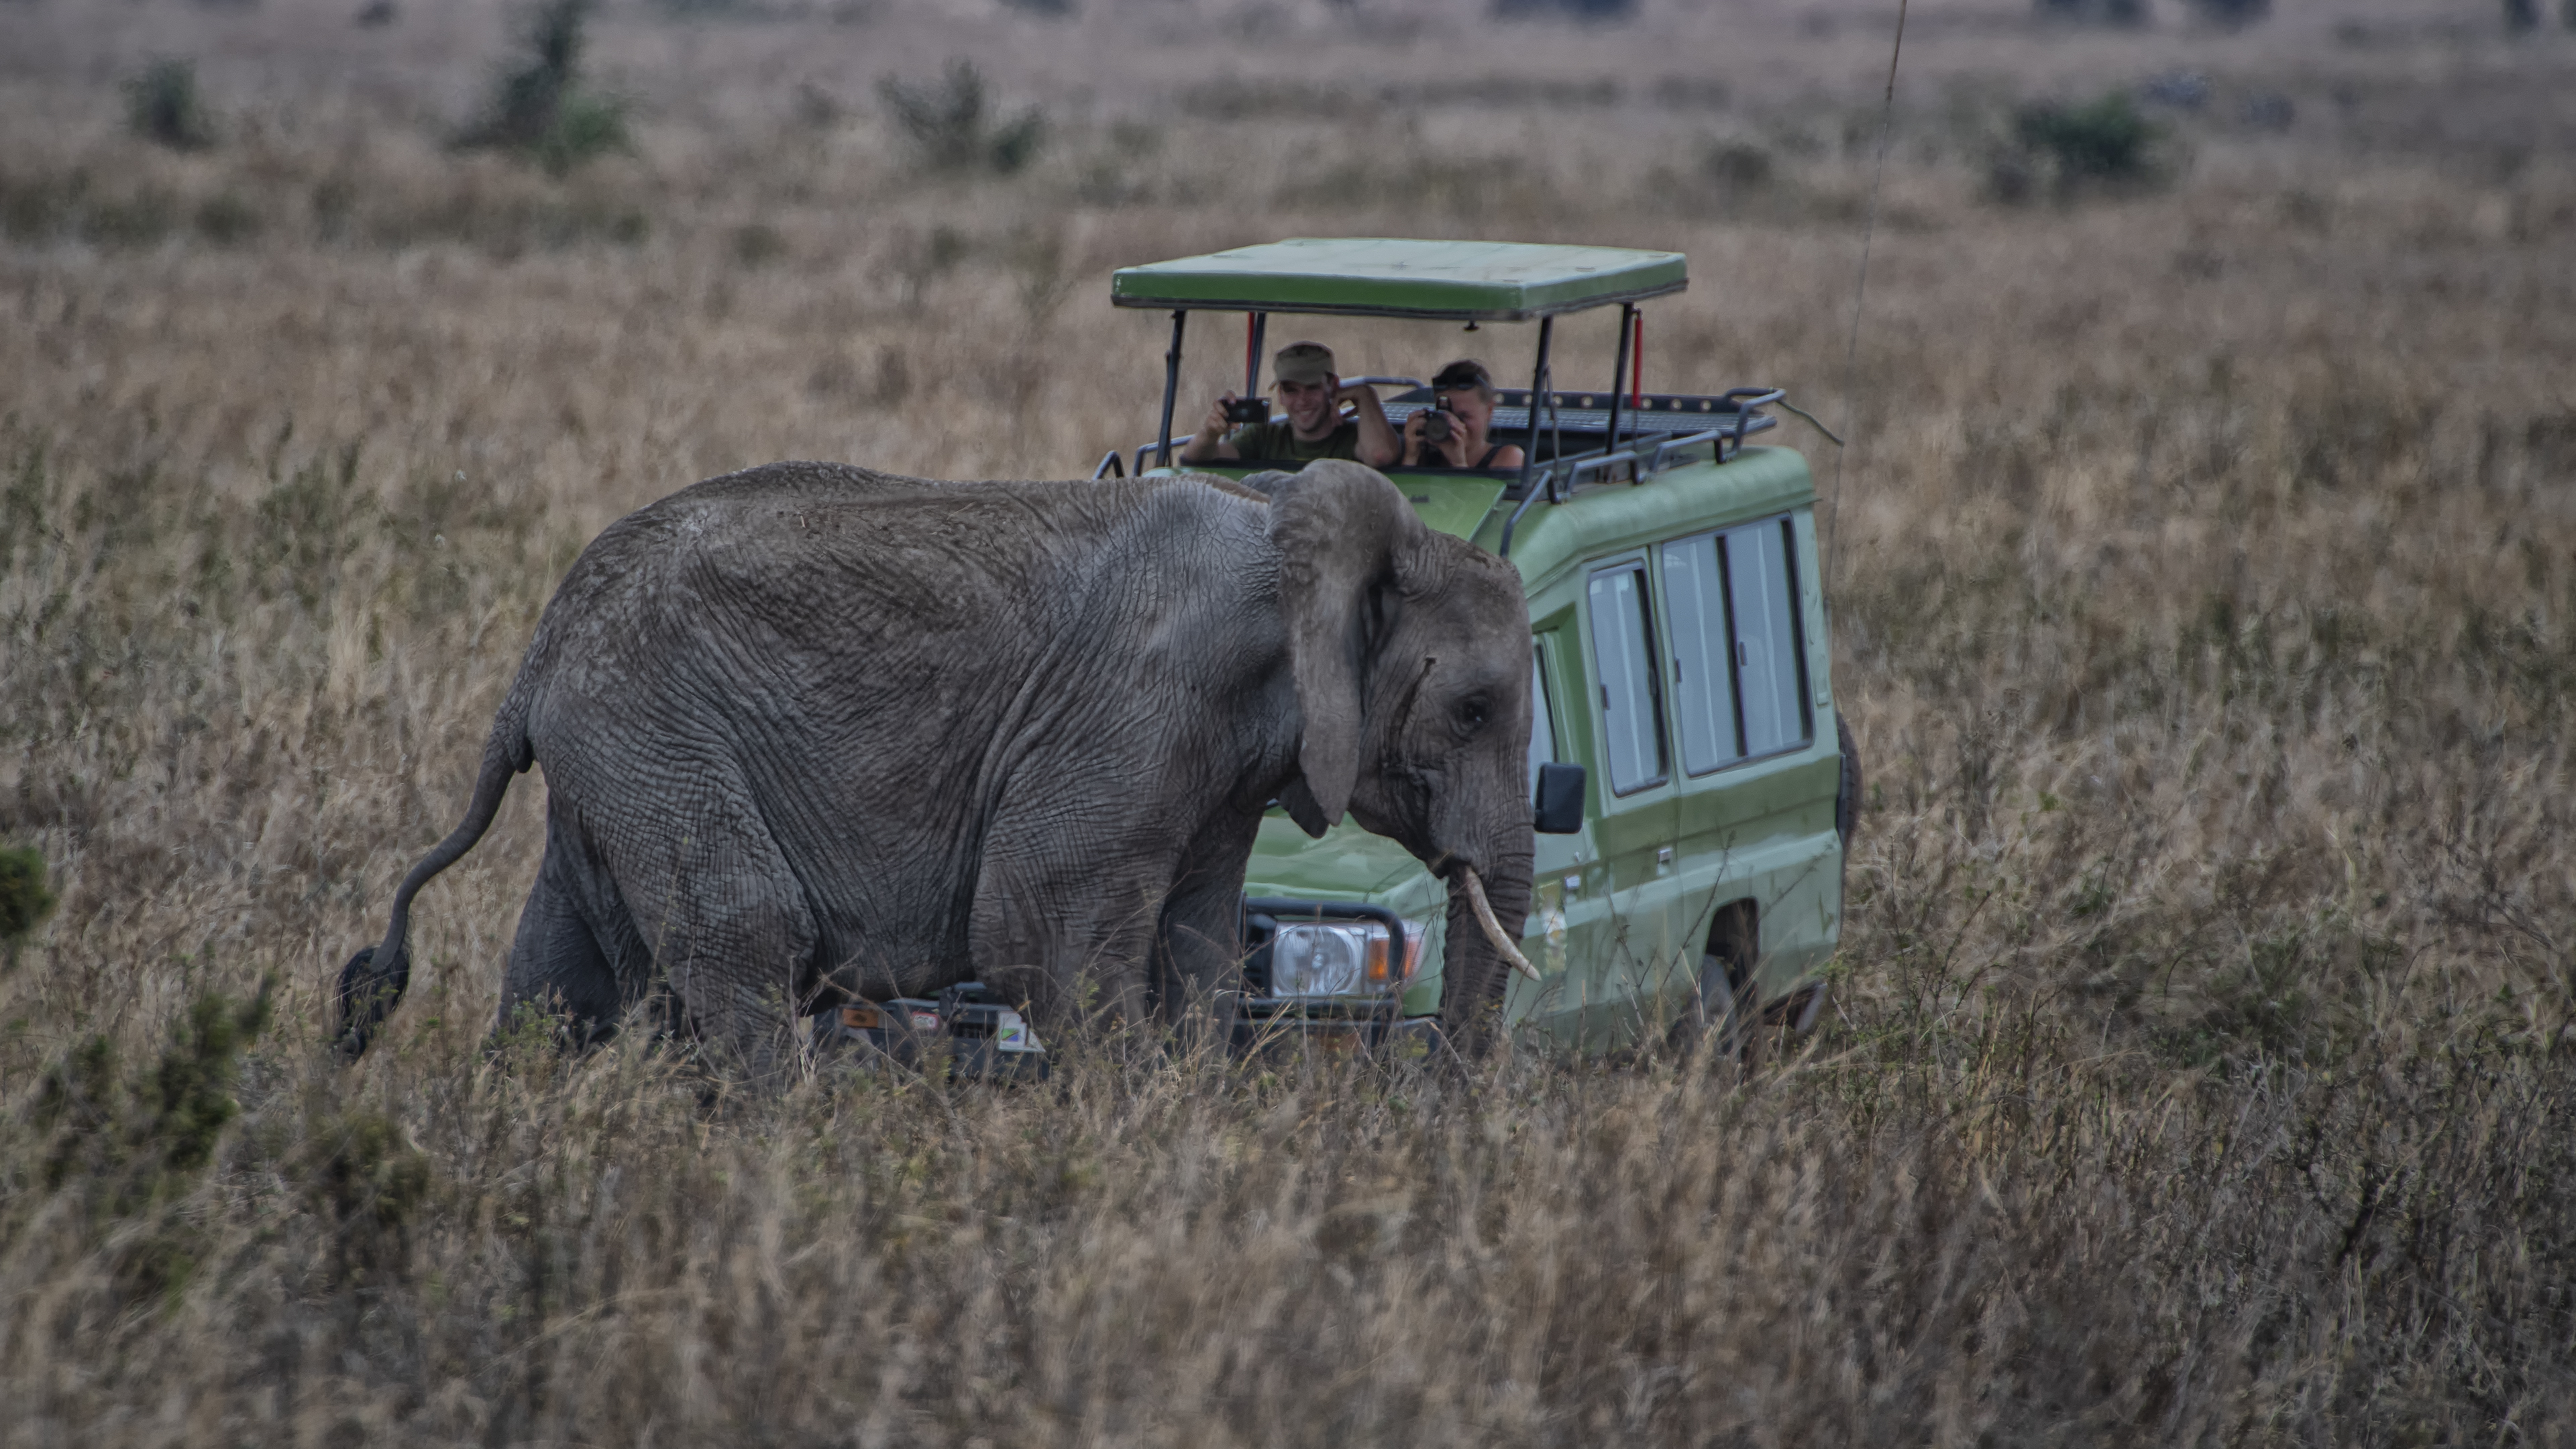 Elephant and Truck